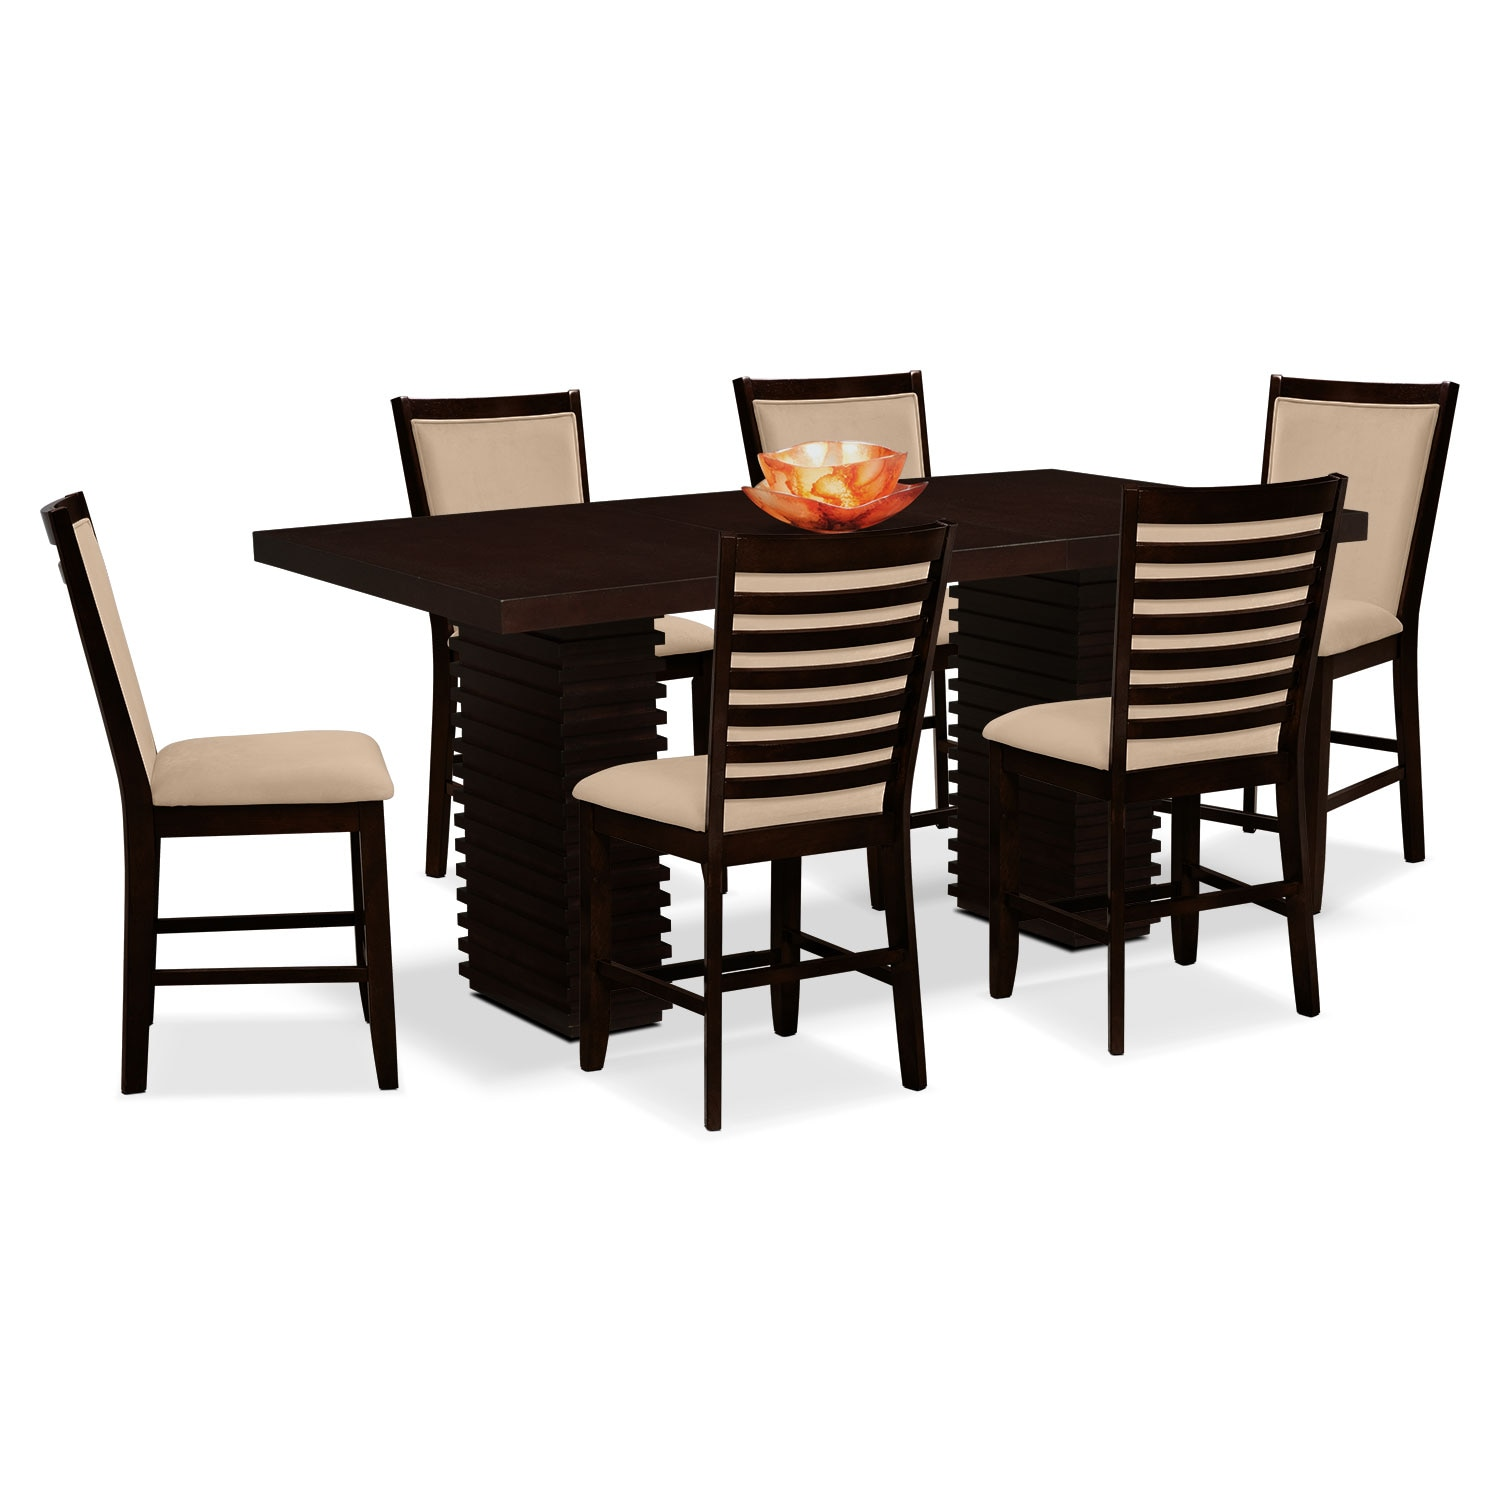 Dining Room Furniture - Paragon Counter-Height Table and 6 Chairs - Camel